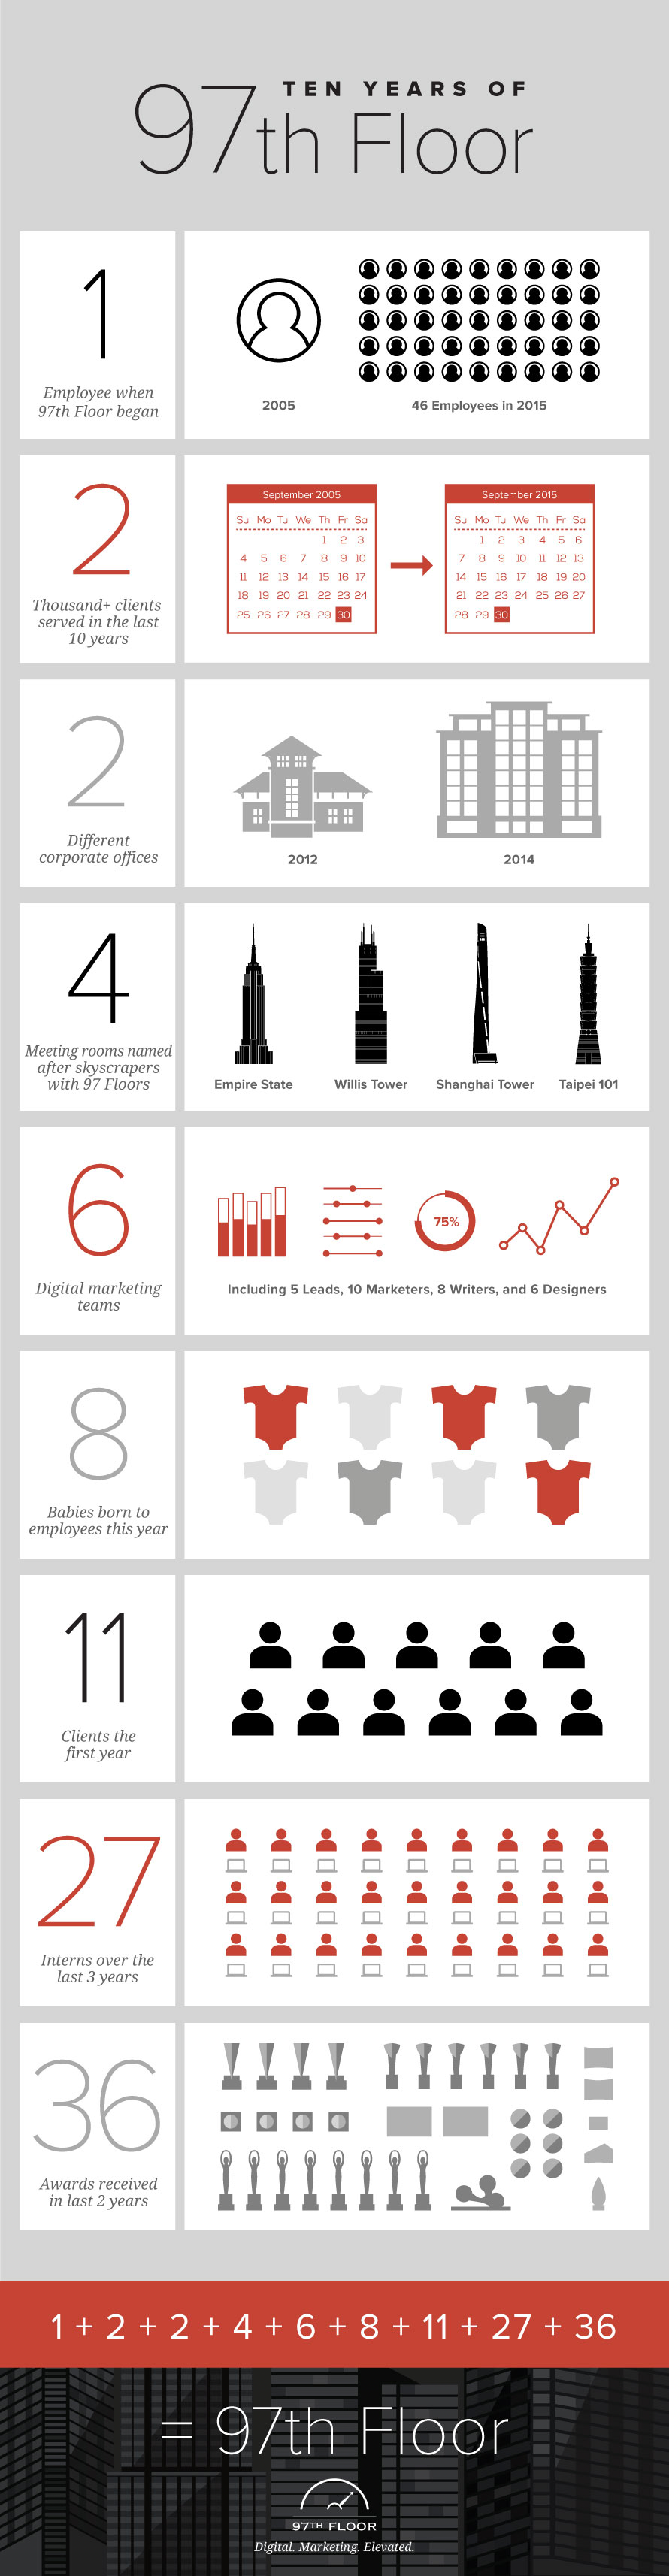 Infographic describing 97th Floor's progression in the last 10 years